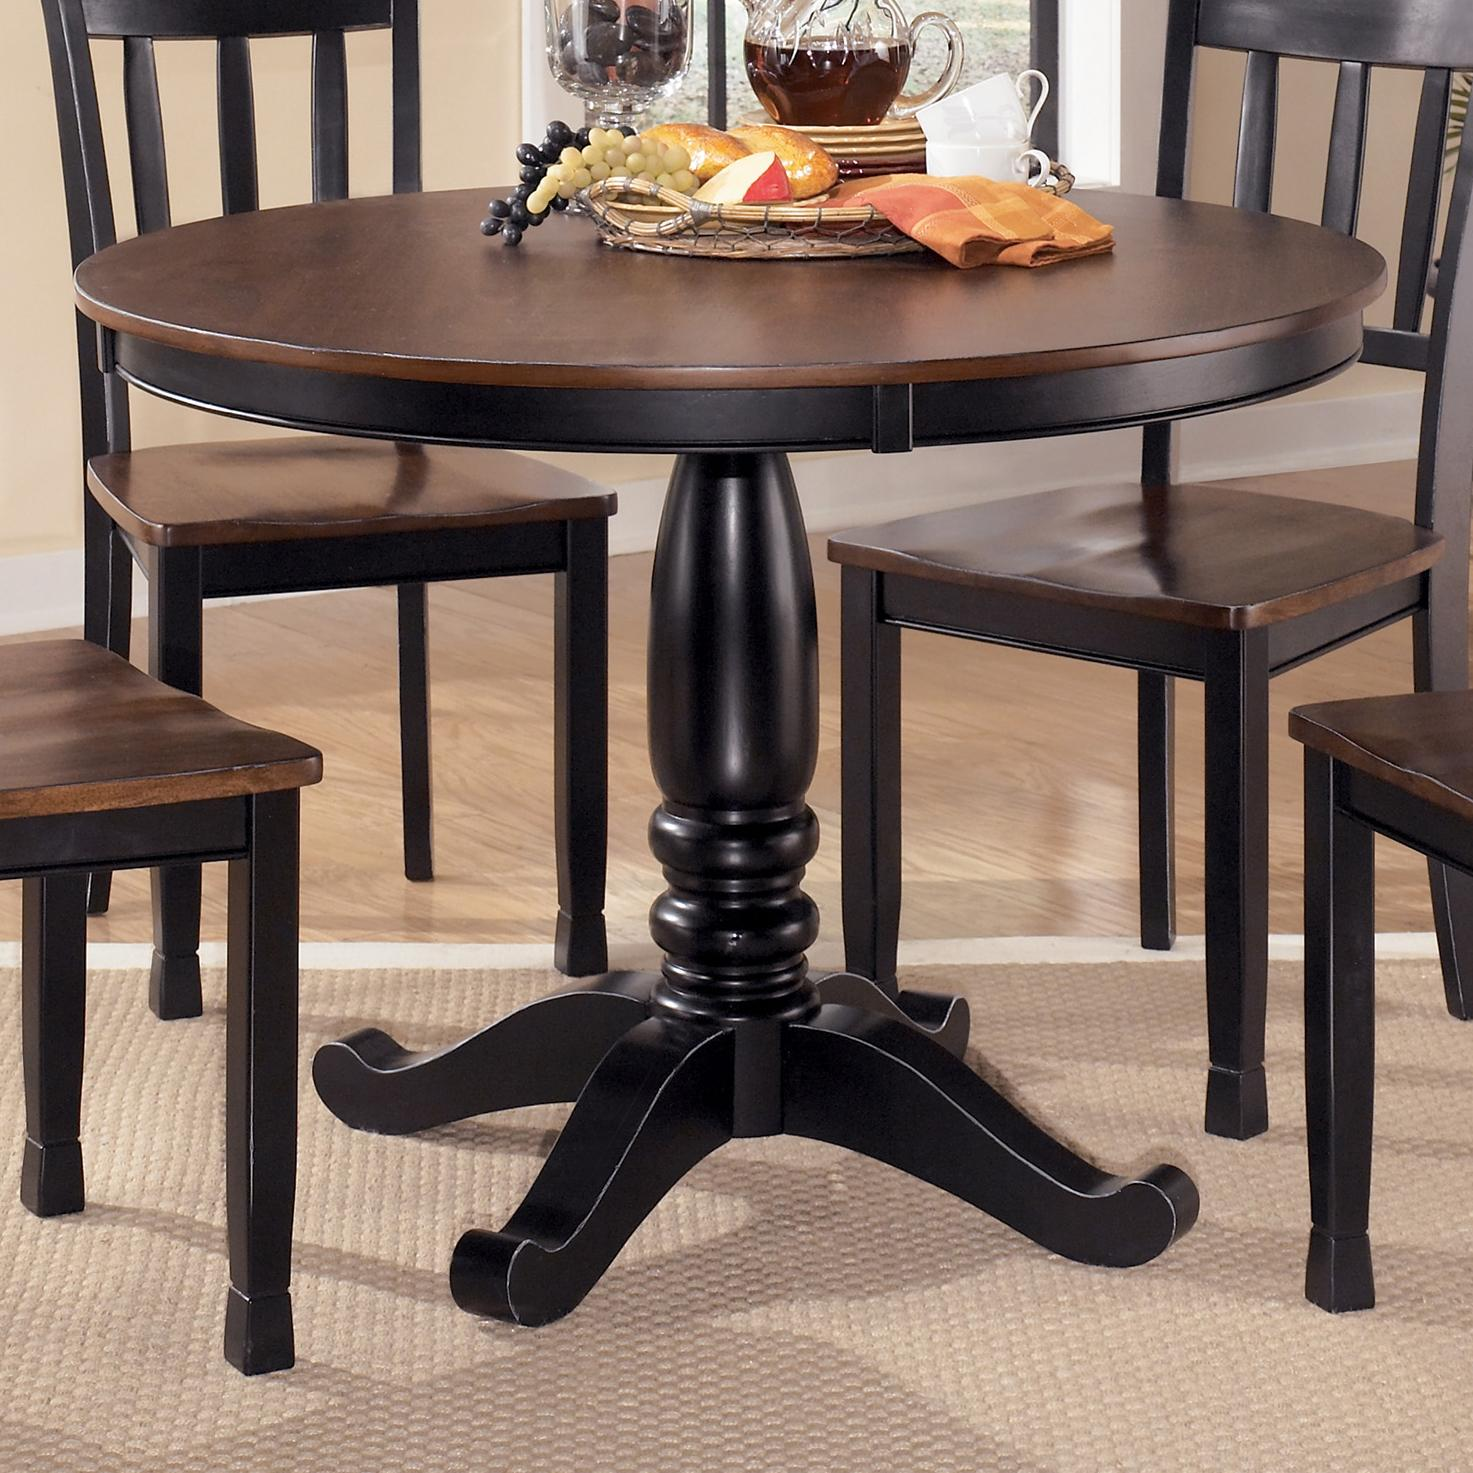 3ce9887f249 Owingsville Round Dining Room Table with Turned Pedestal Base by Signature  Design by Ashley